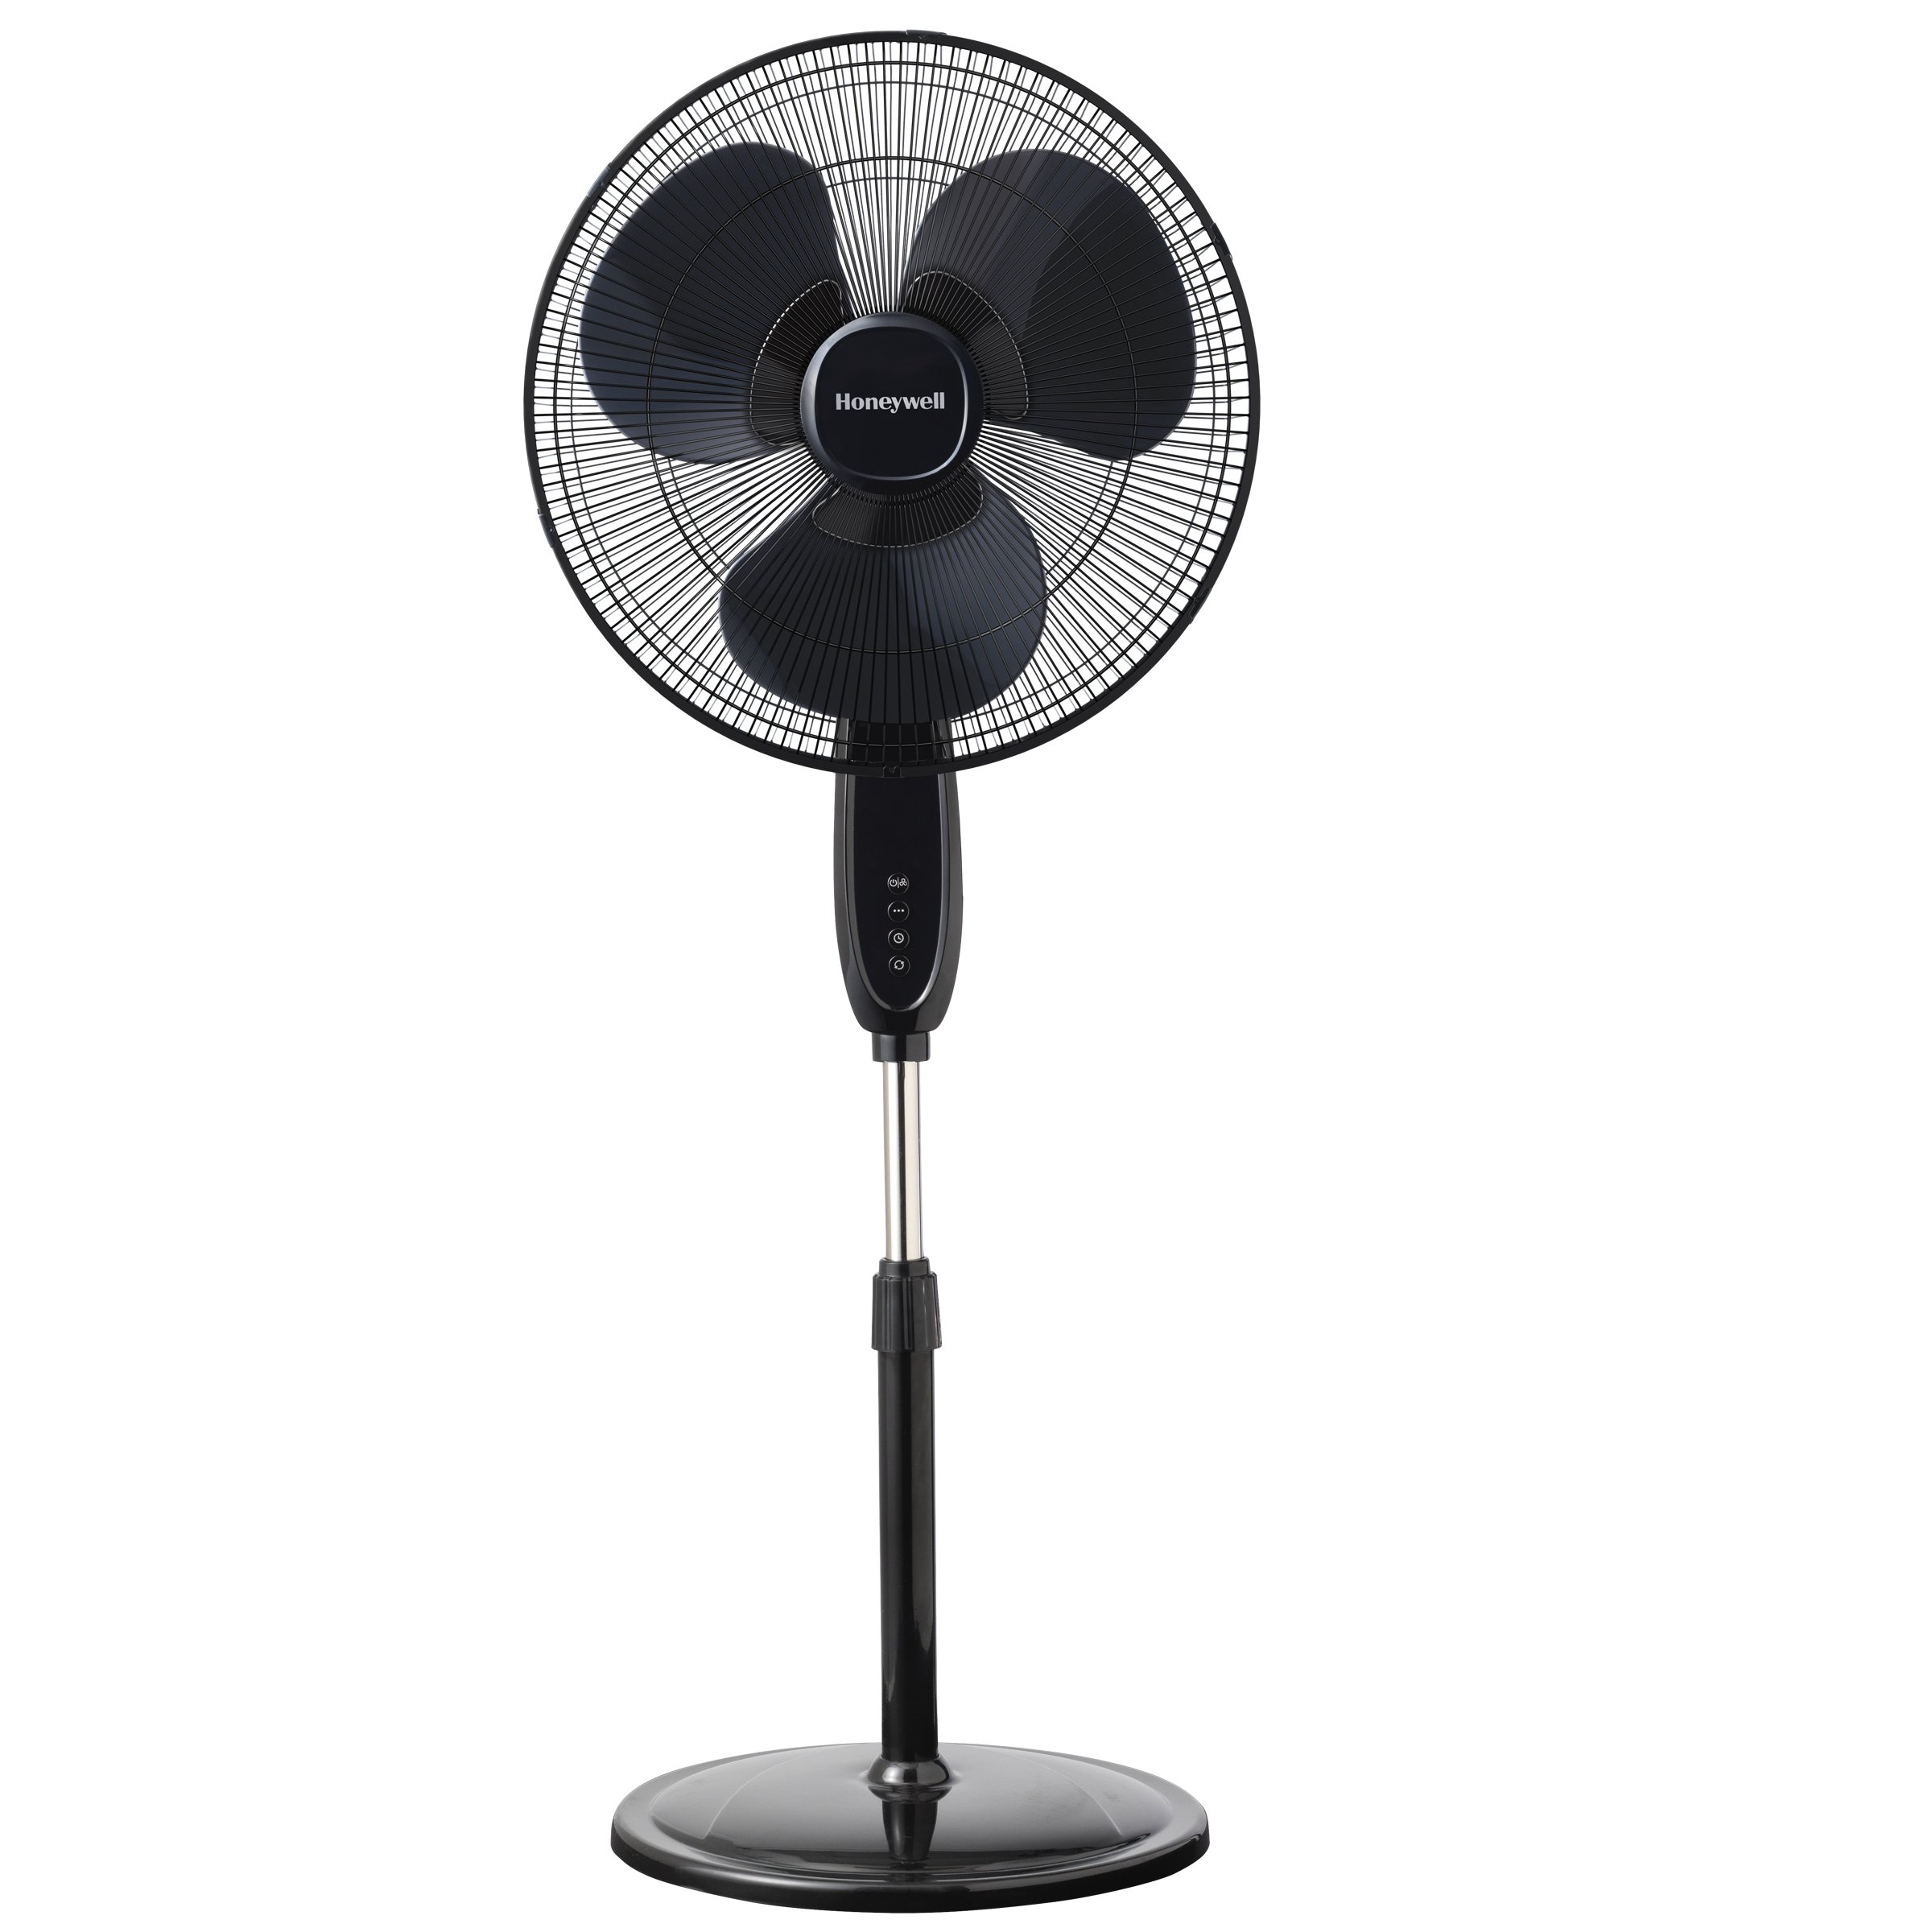 Honeywell Double Blade 16 Pedestal Fan Black With Remote Control, Oscillation, Auto-Off & 3 Power Settings by Honeywell